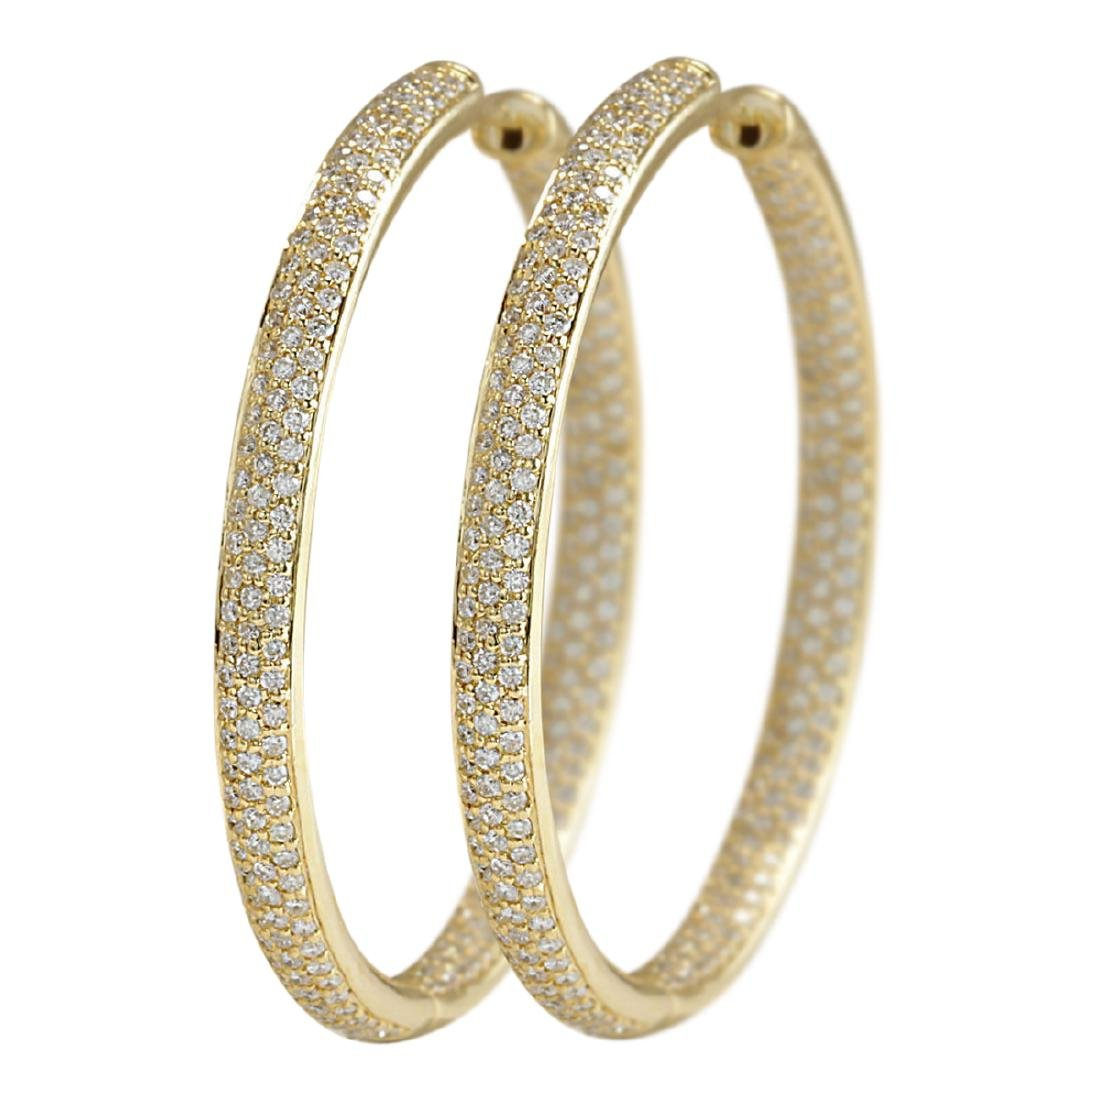 3.36 CTW Natural Diamond Hoop Earrings 18K Solid Yellow